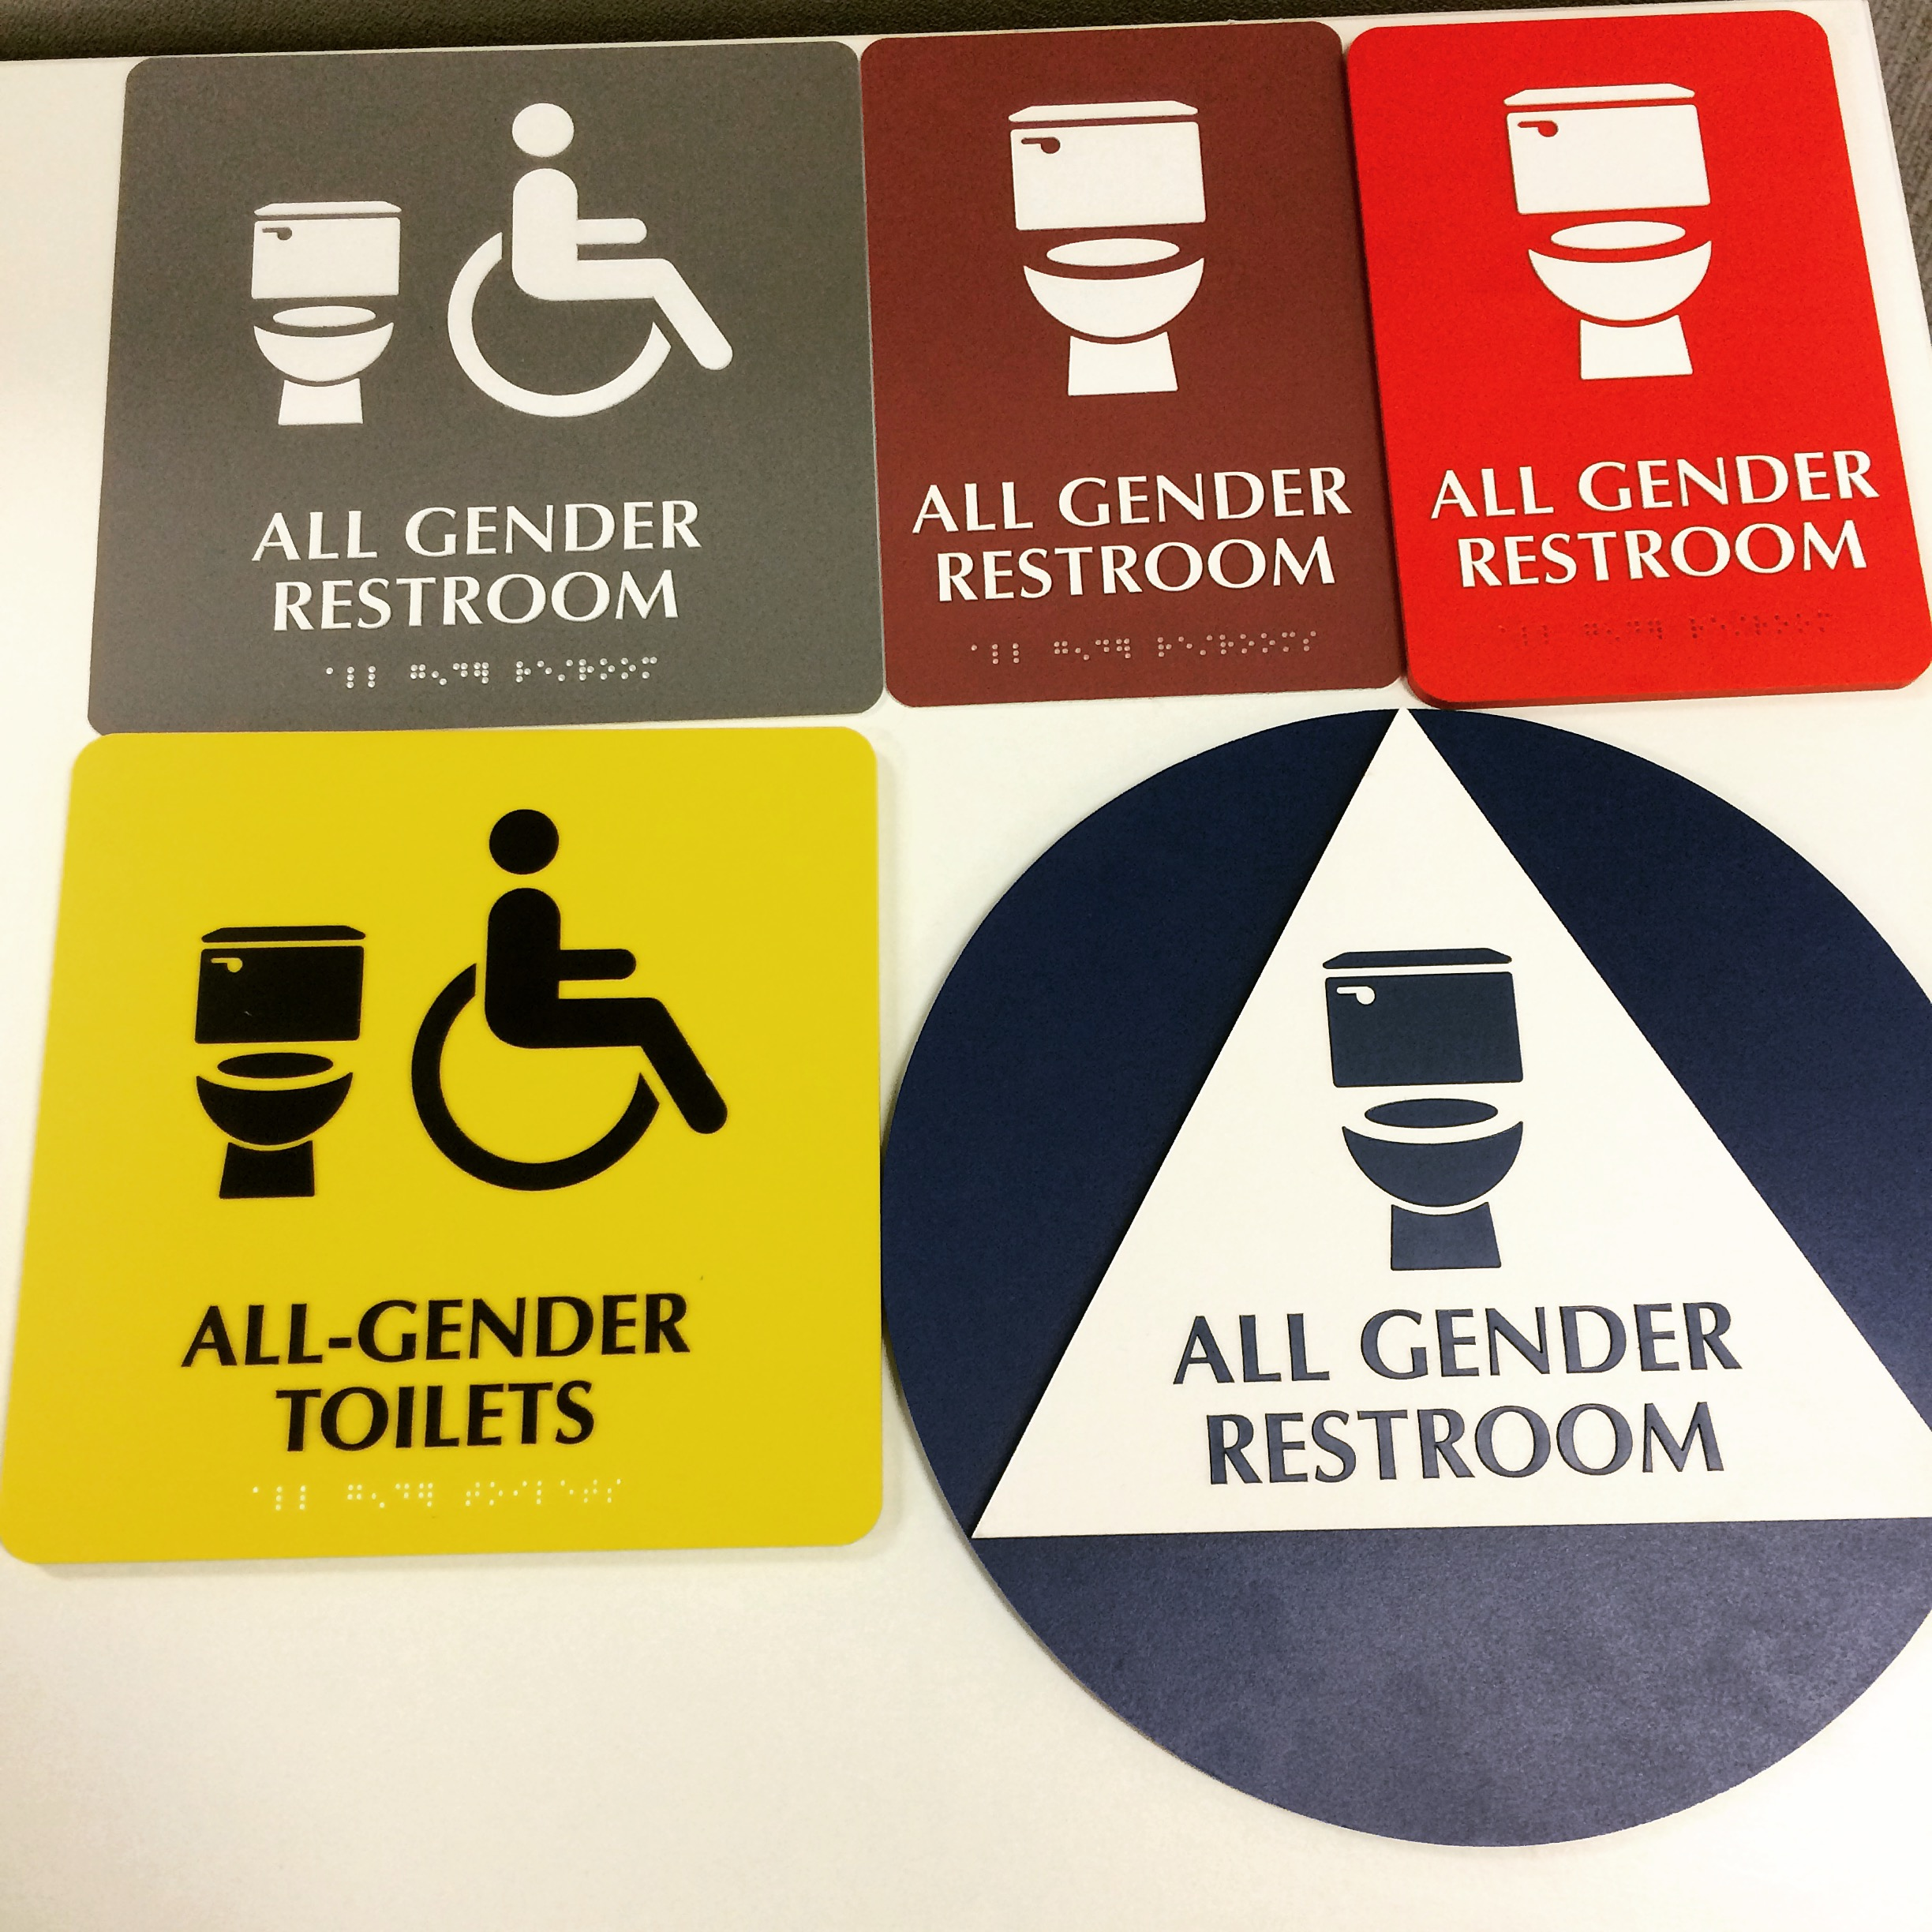 All Gender Bathrooms Now Mandatory In West Hollywood